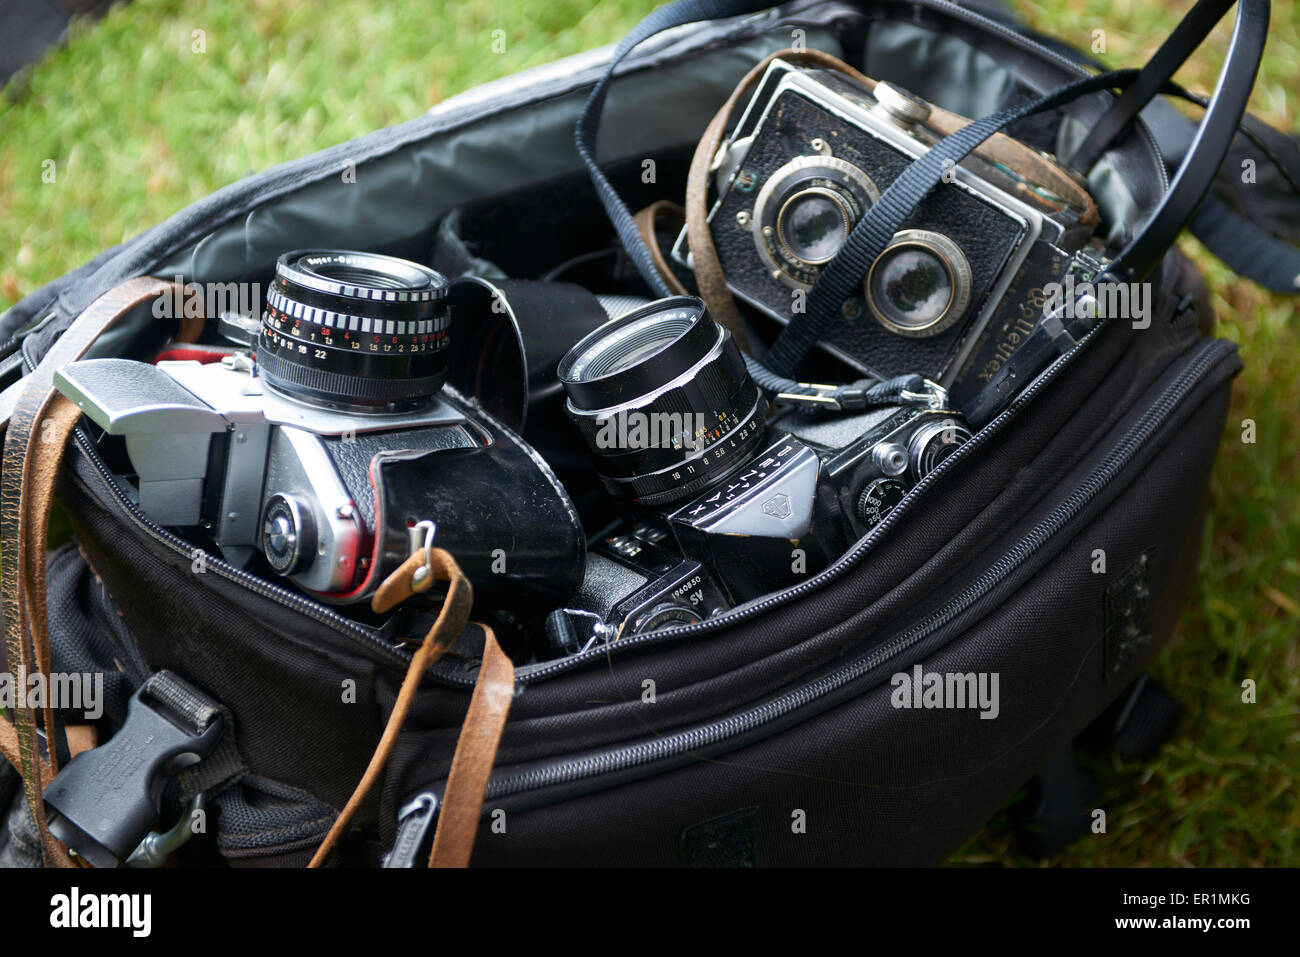 overhead image of group old vintage cameras gear needed for old school film photography enthusiasts - Stock Image